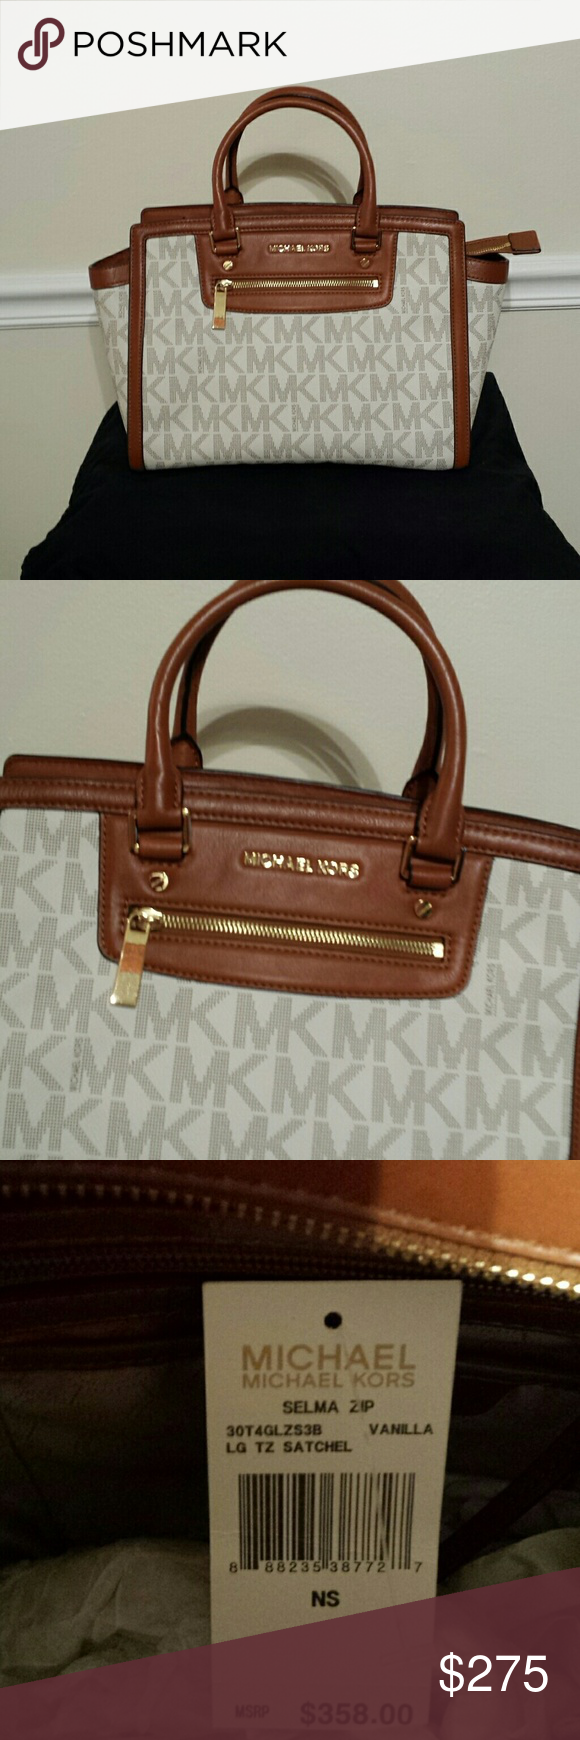 6a8fb067690b Michael Kors Tote · Crossbody Bag · BEAUTIFUL LARGE MK SELMA ZIP LARGE  SATCHEL Bring out a bold look with this gorgeous satchel